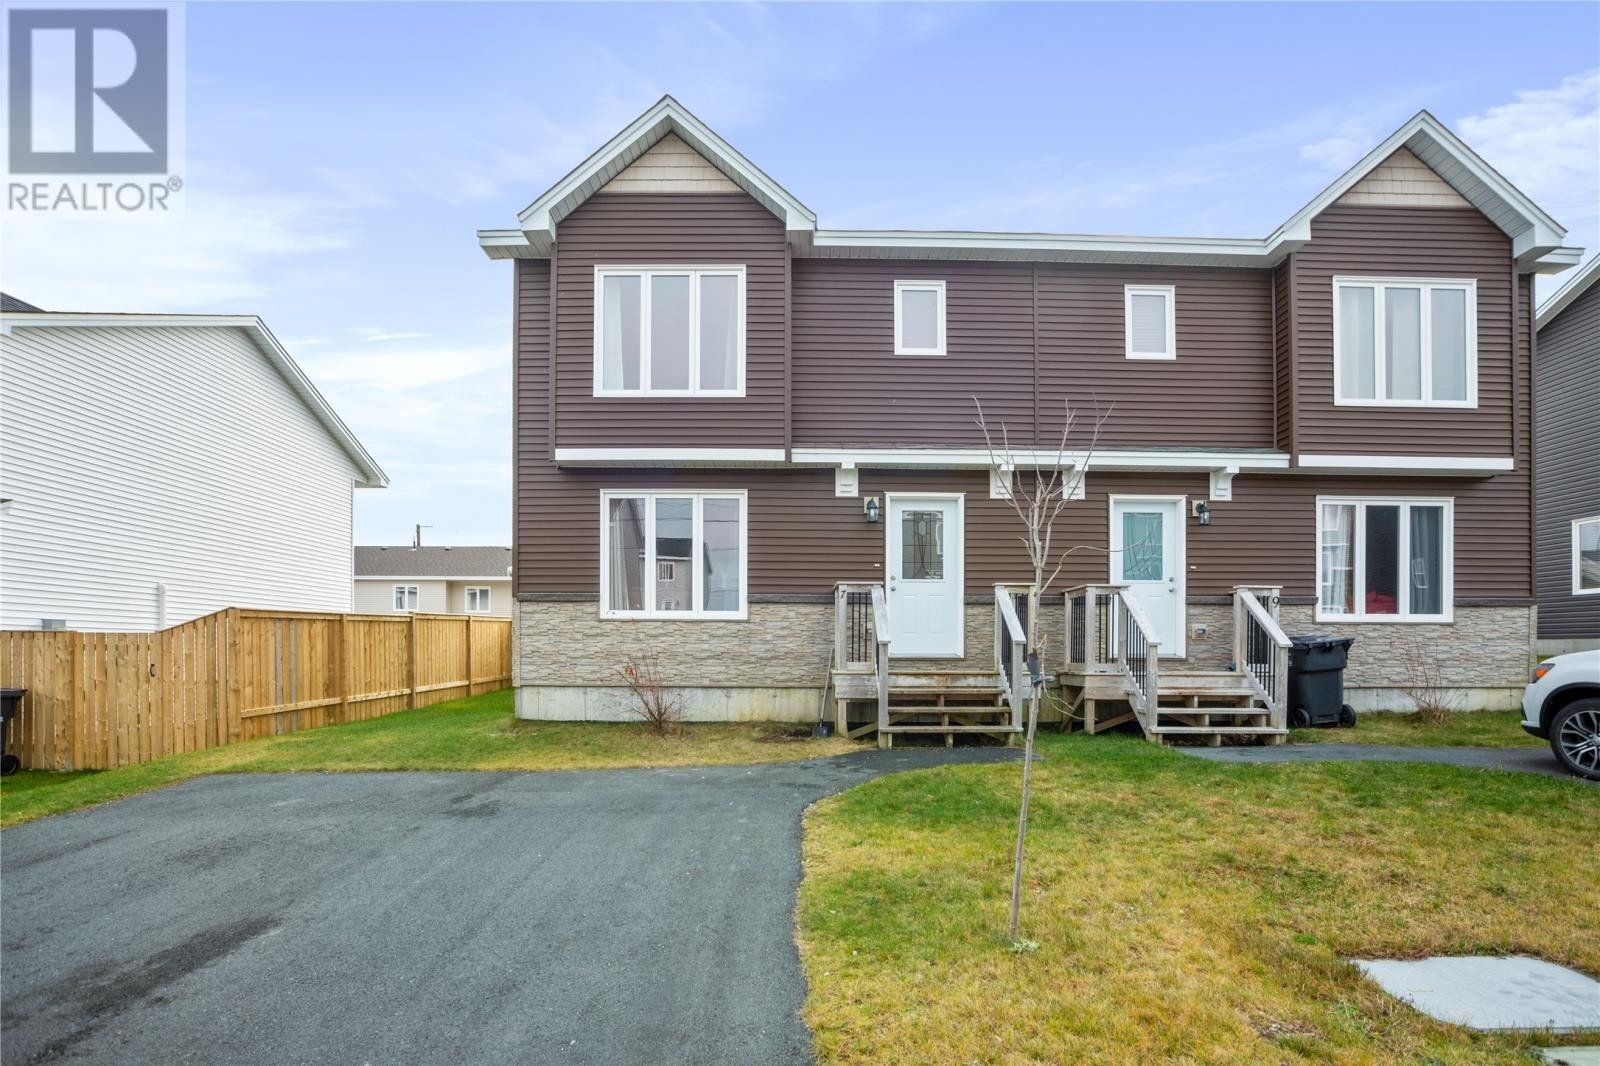 House for sale at 9 Foxglove St Paradise Newfoundland - MLS: 1223527